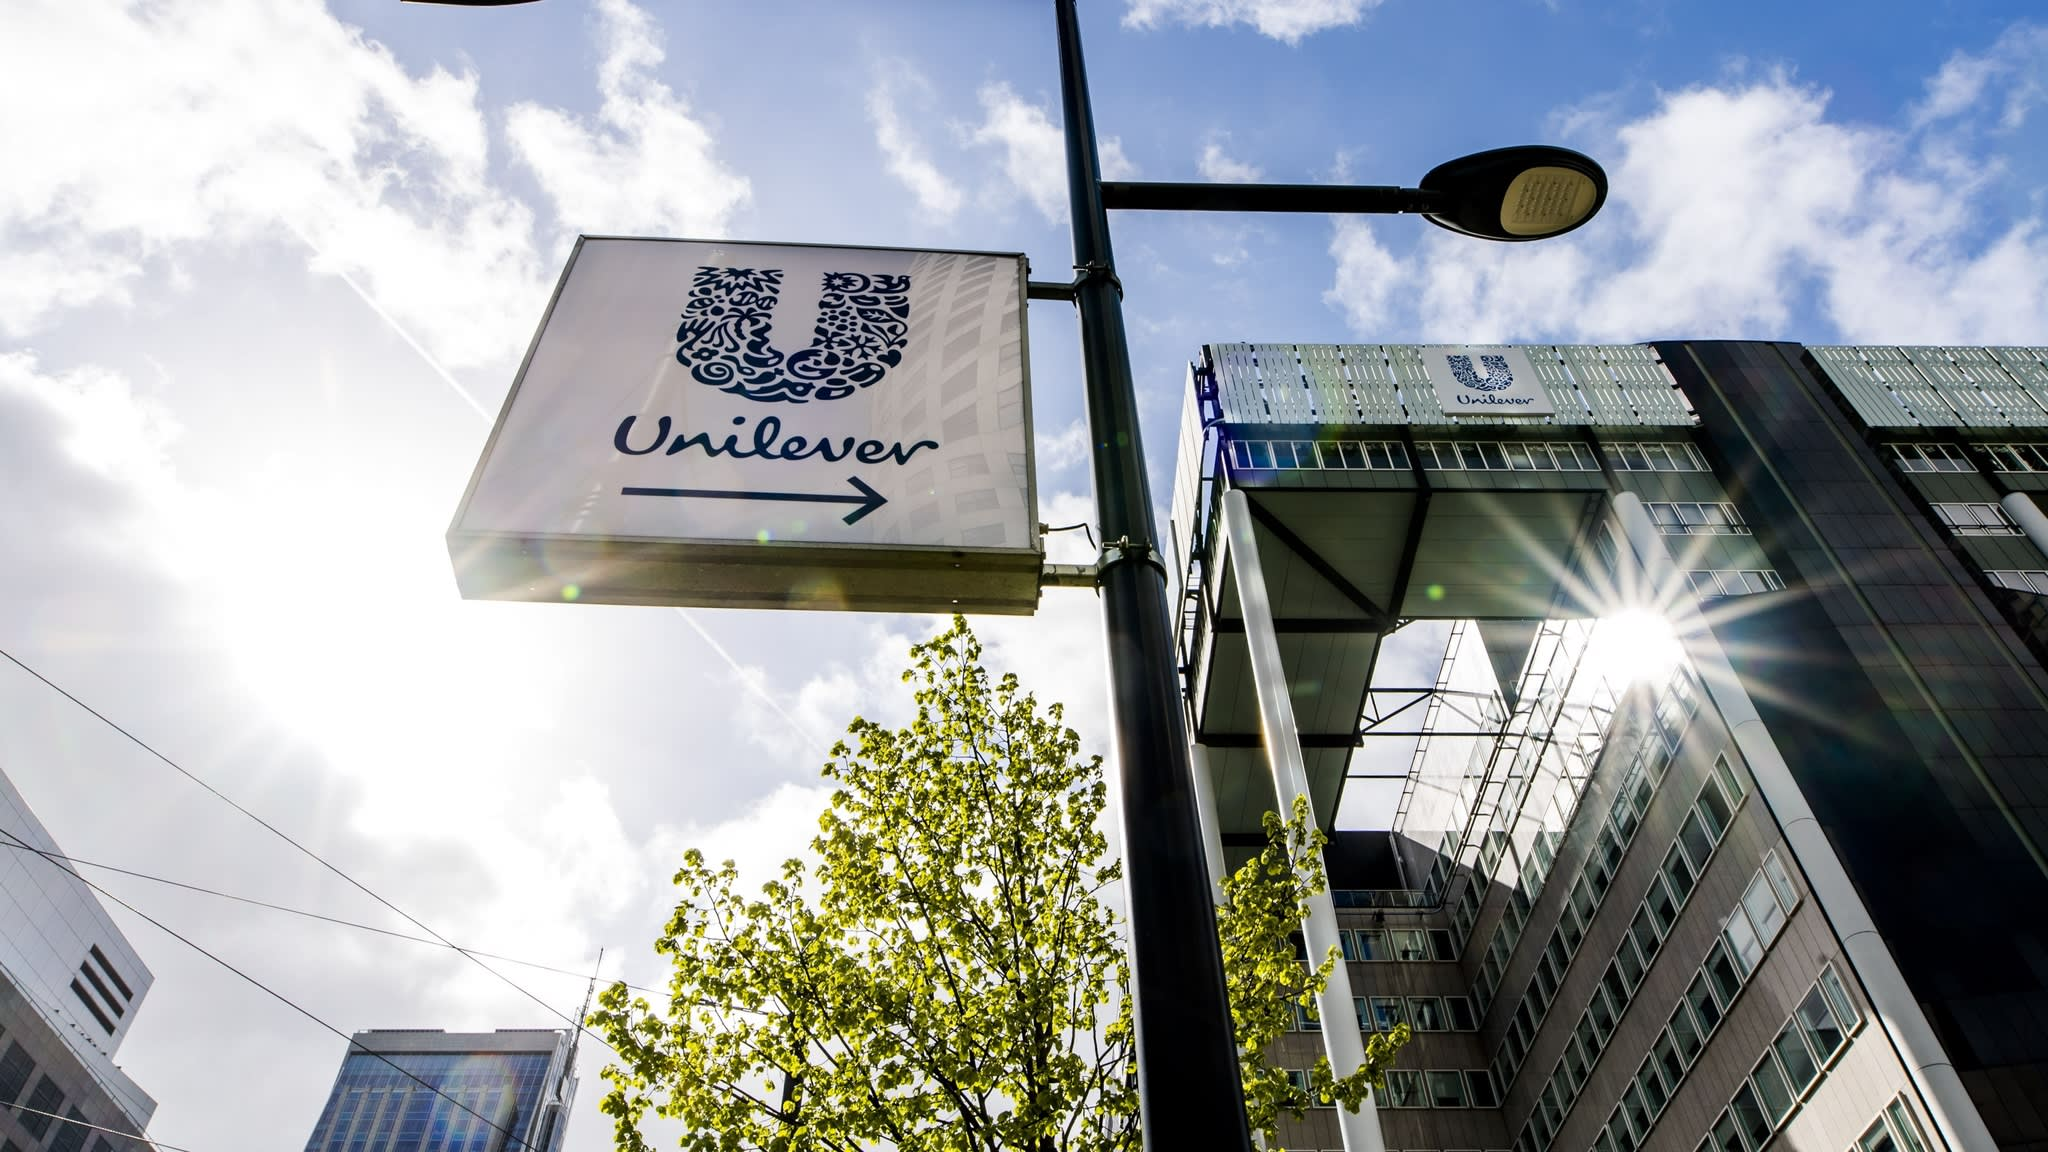 Unilever chooses Netherlands over UK for corporate base